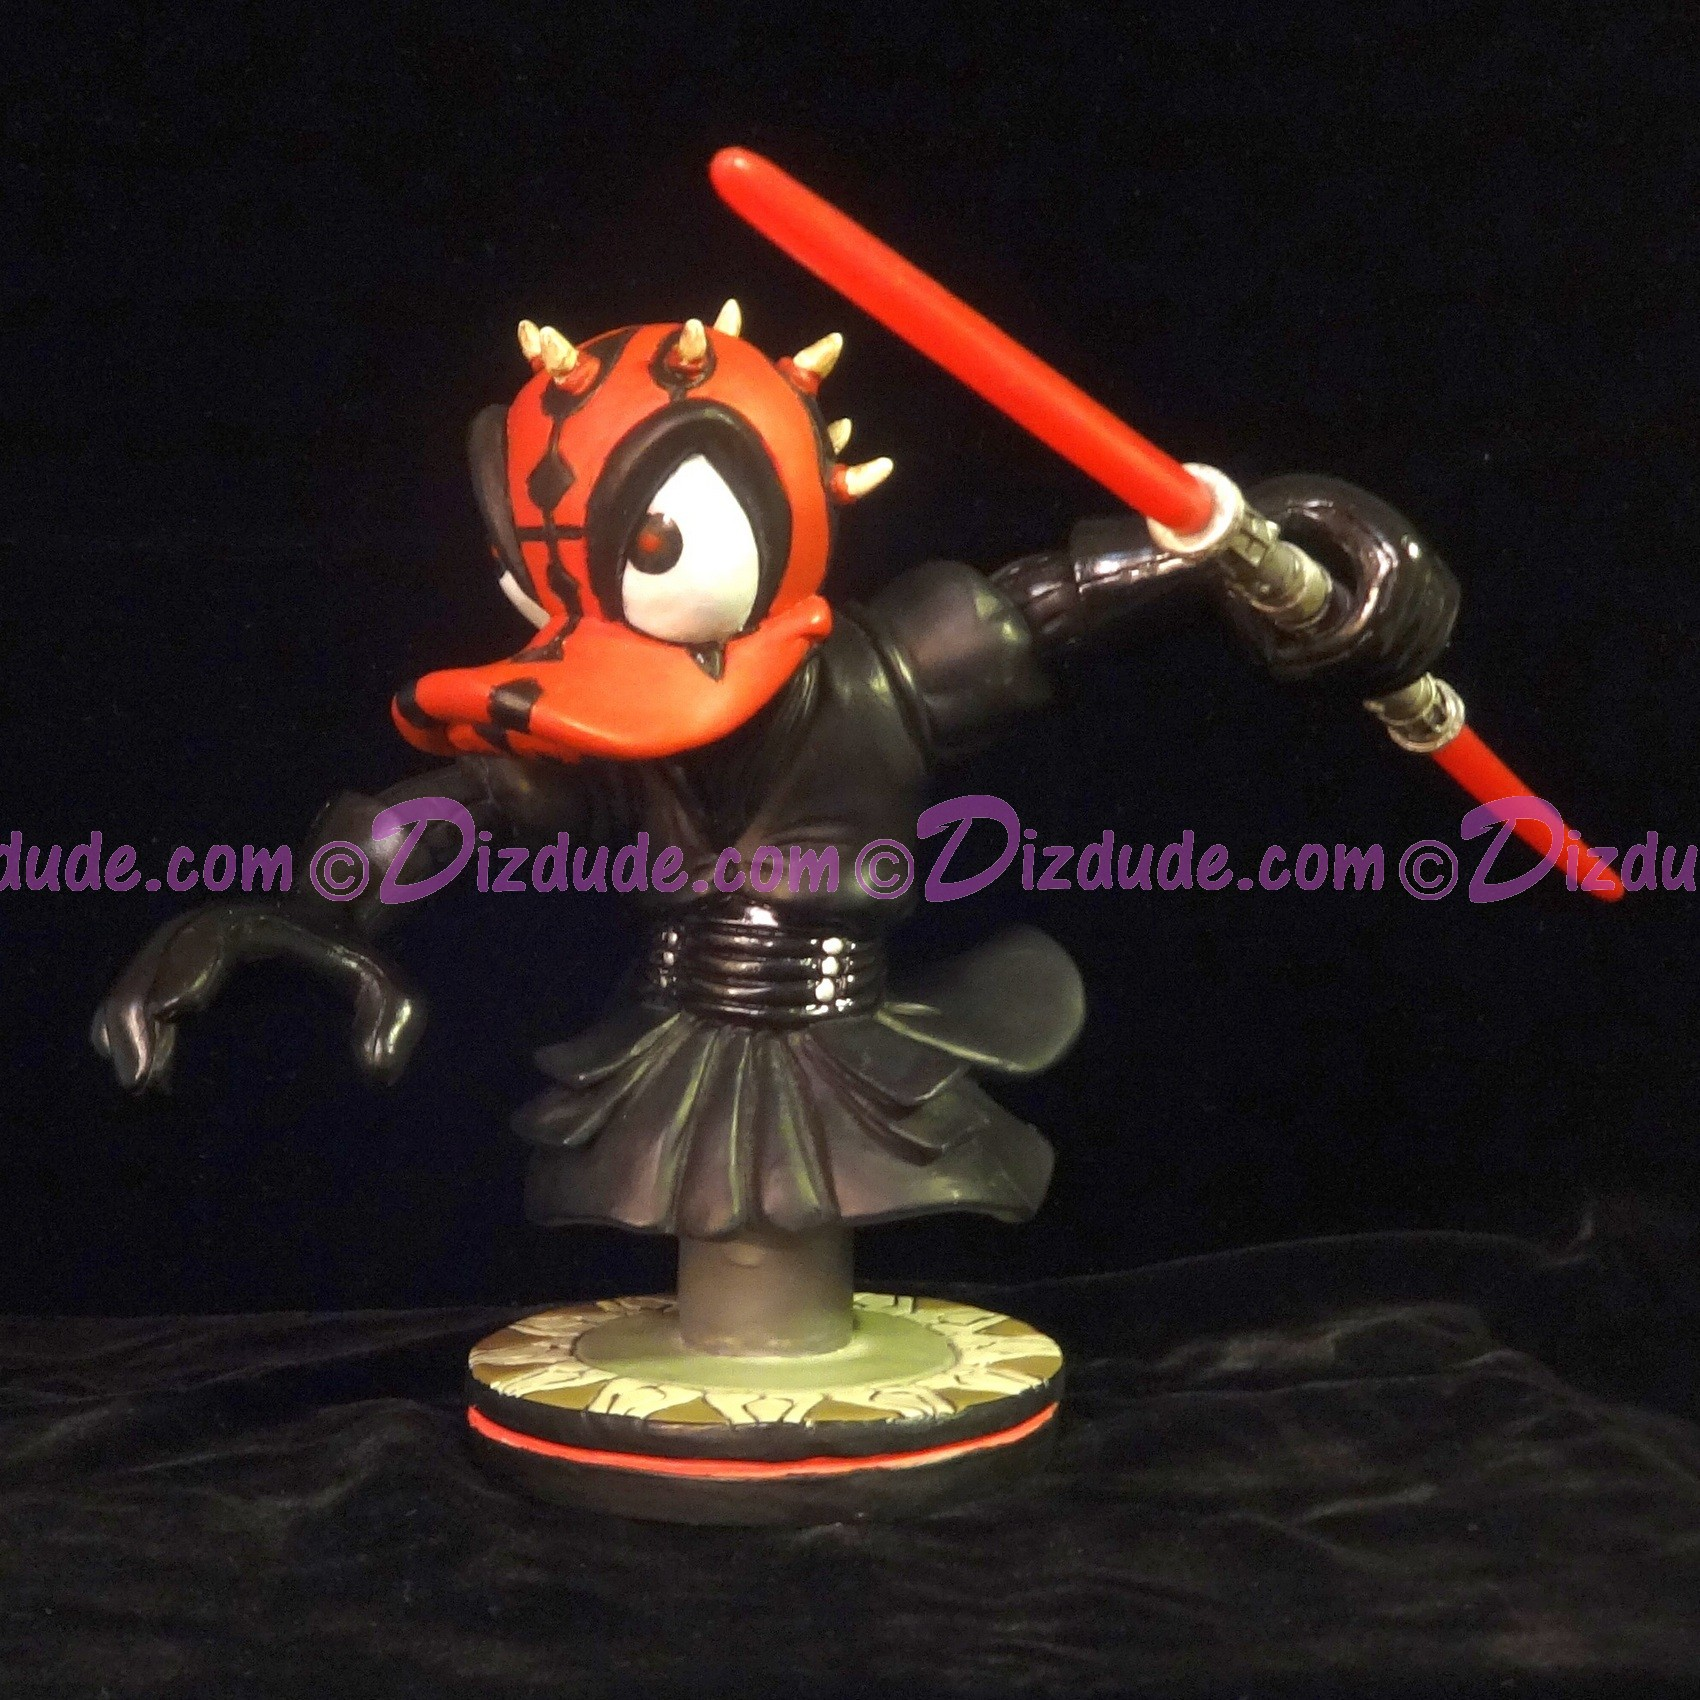 Disney Star Wars Donald as Darth Maul Bust LE 3000 - Official Disney Star Wars Weekends 2015 Event